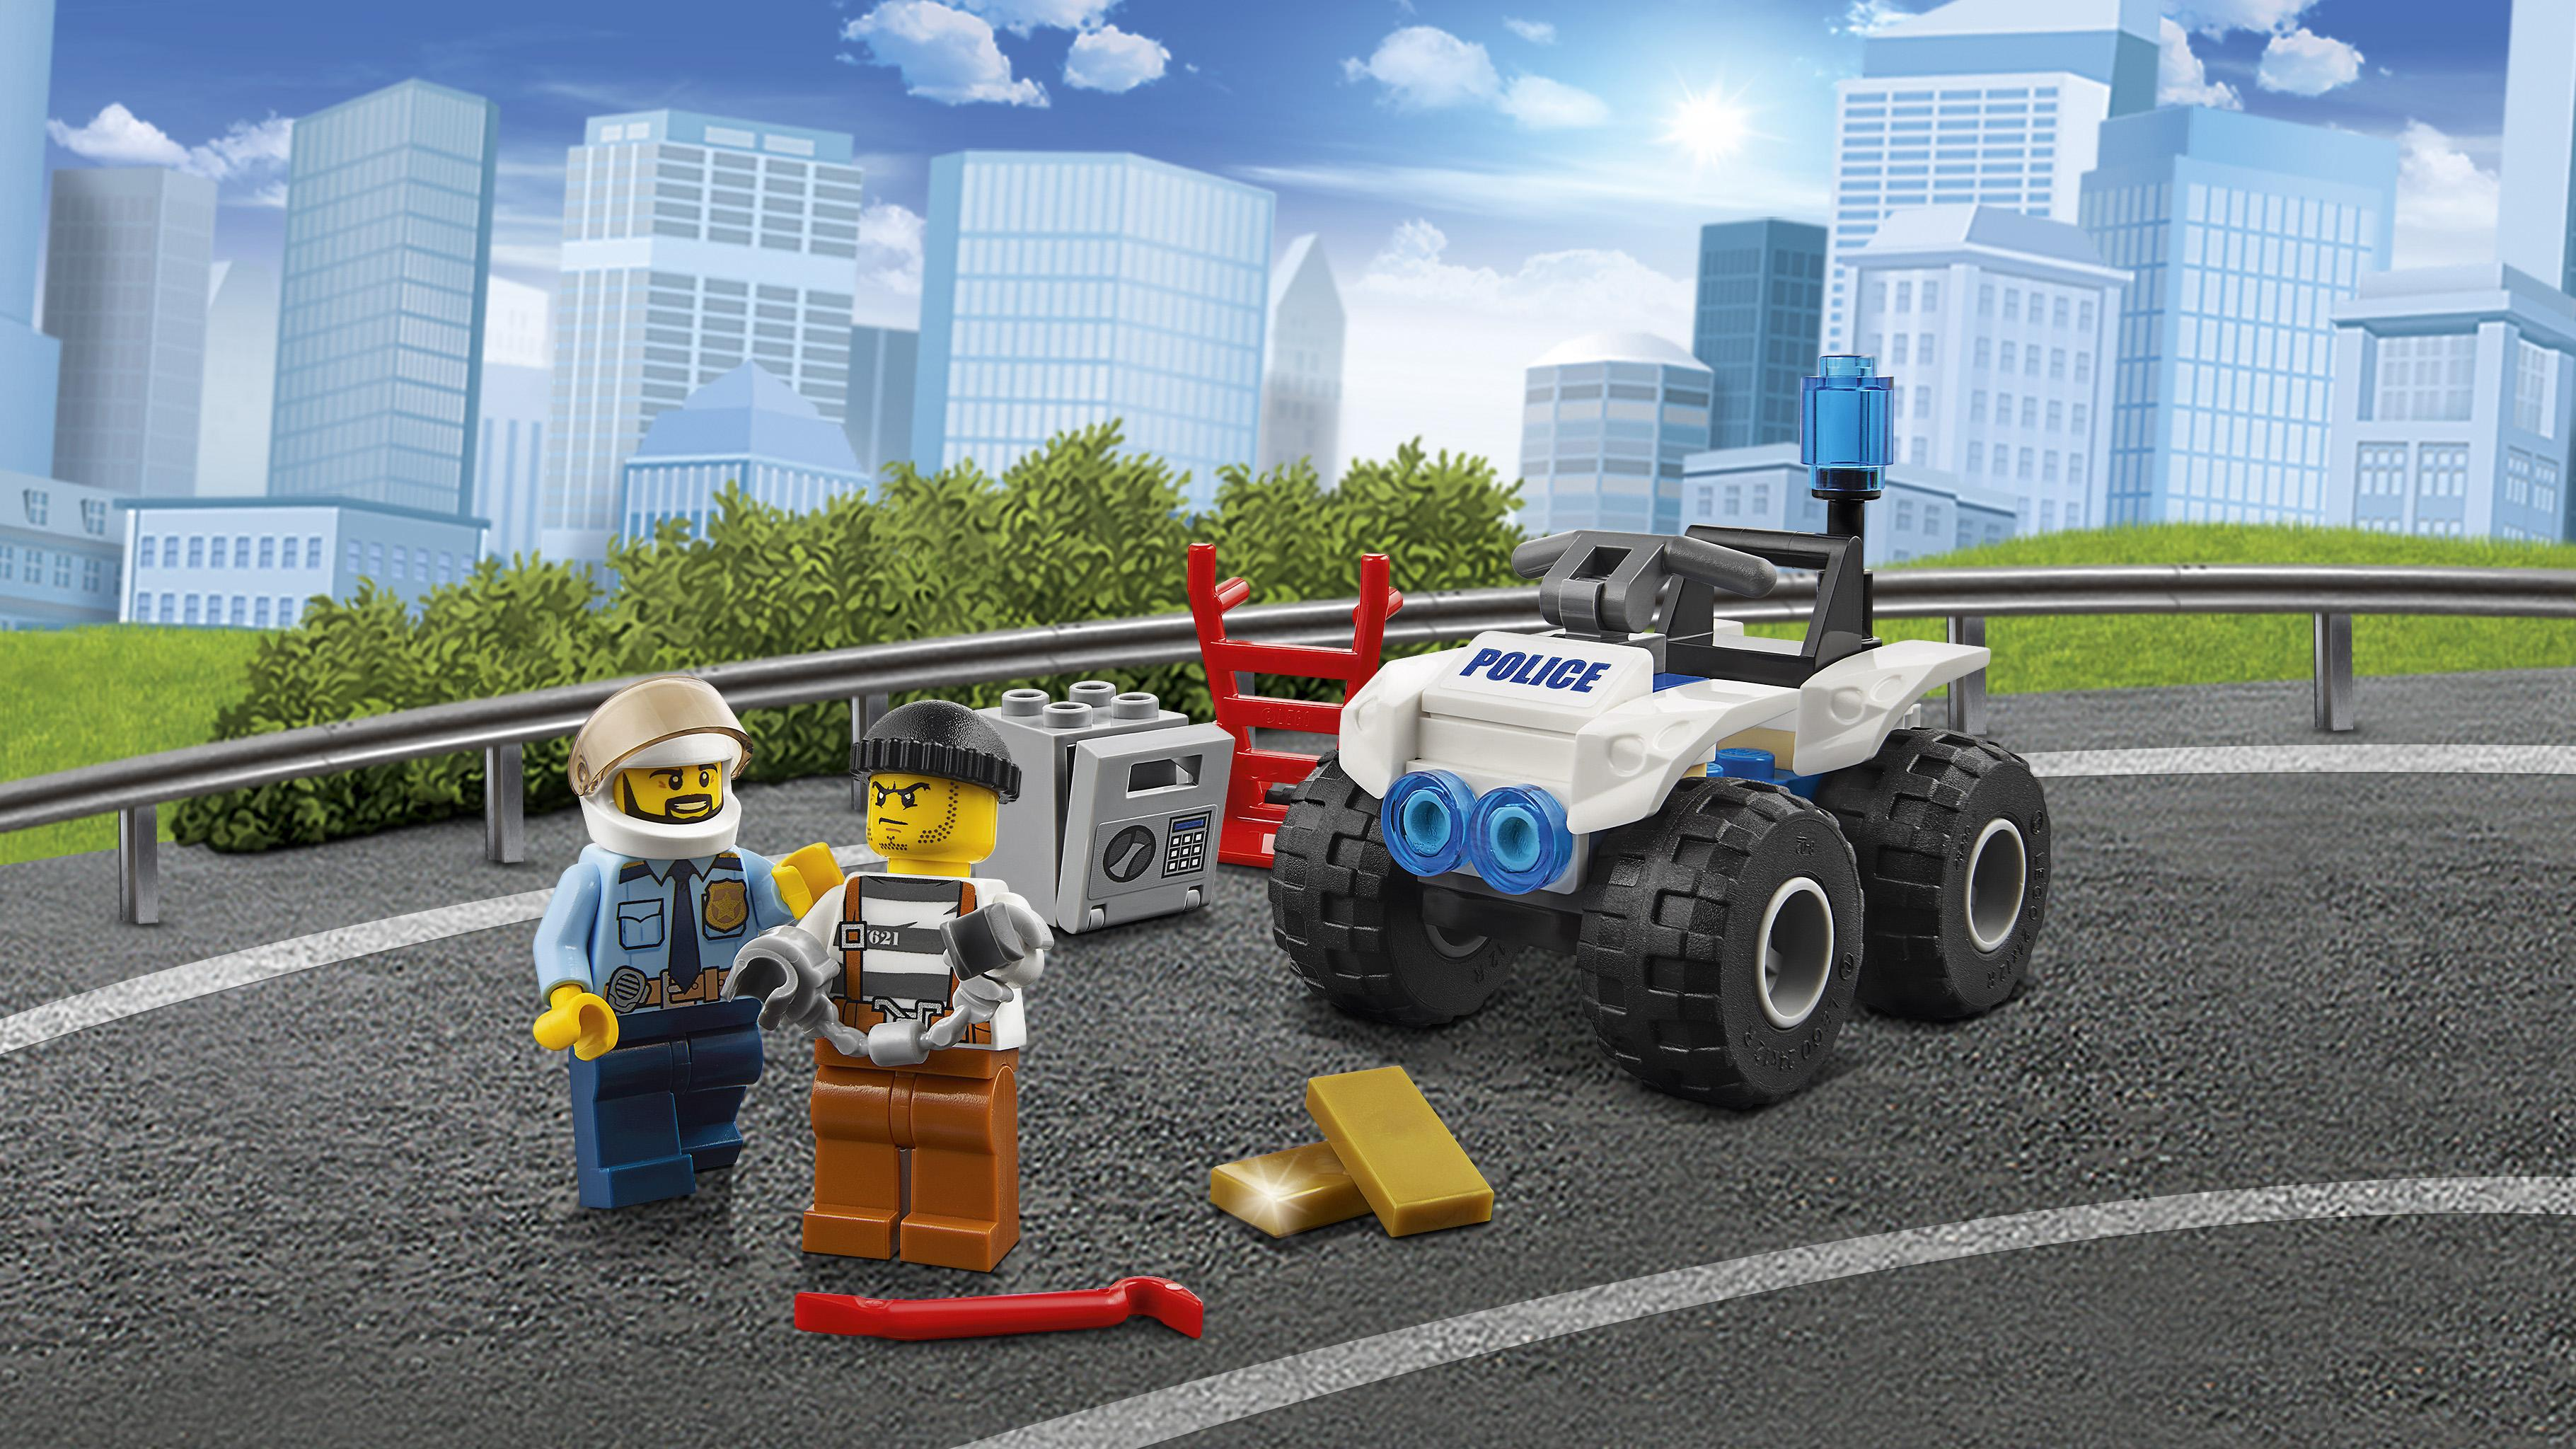 LEGO City - Quad de arresto (60135): Amazon.es: Juguetes y